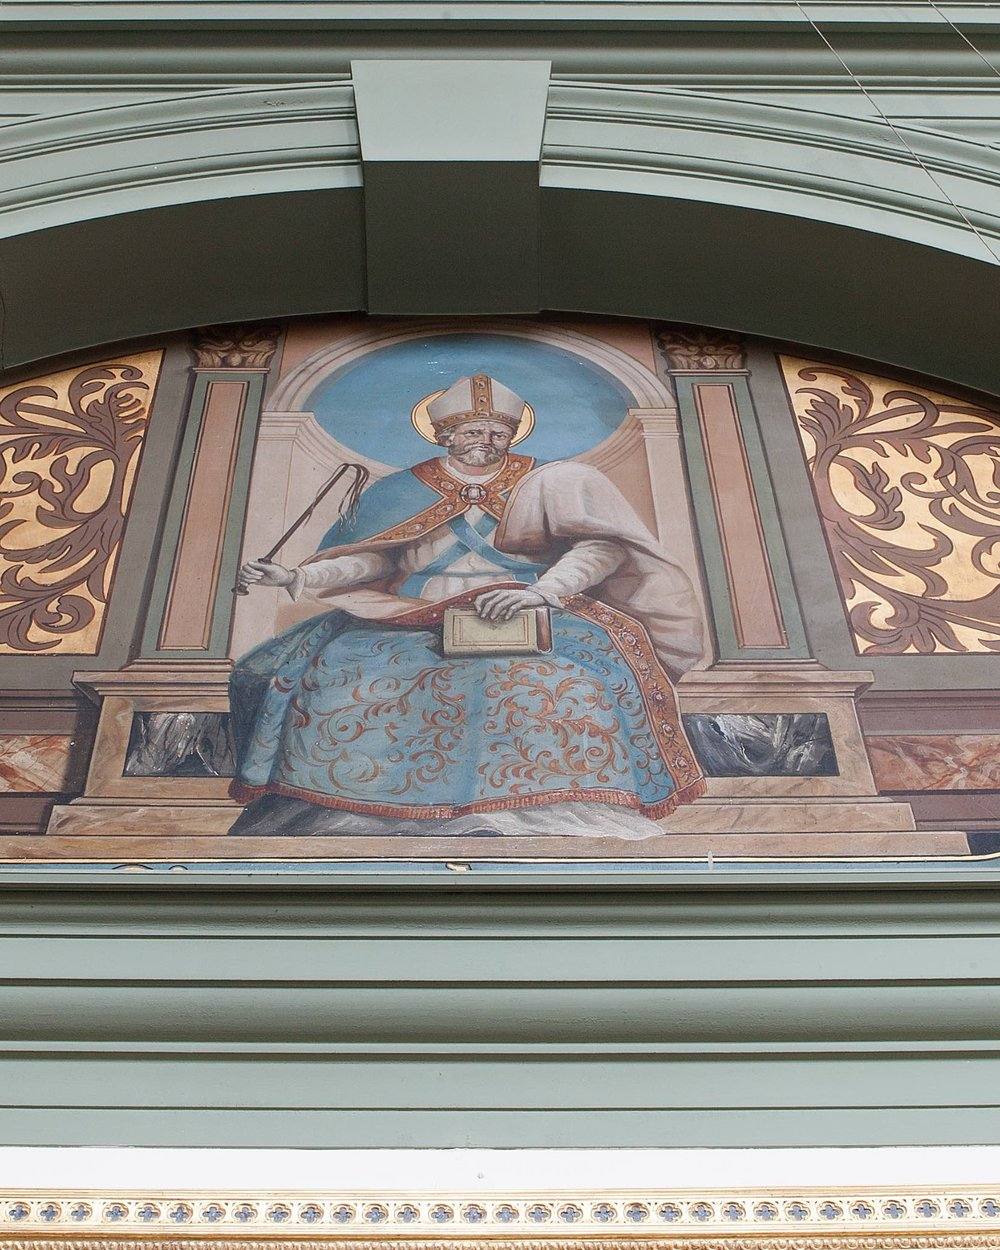 St. Ambrose - Born in 339 or 340, the son of the Roman prefect of Gaul, Ambrose initially pursued a career in law.  Appointed by the emperor to conduct the election of the Bishop of Milan, he was instead persuaded by popular acclaim to accept the appointment himself.  Because he was only a catechumen at that time, he received baptism and ordination to the diaconate, presbyterate and episcopate all within the space of a week in 374. He baptised Augustine on Holy Saturday, 387, and died on Holy Saturday, 4th April 397.  His feast day is December 7th, the anniversary of his ordination as a bishop.